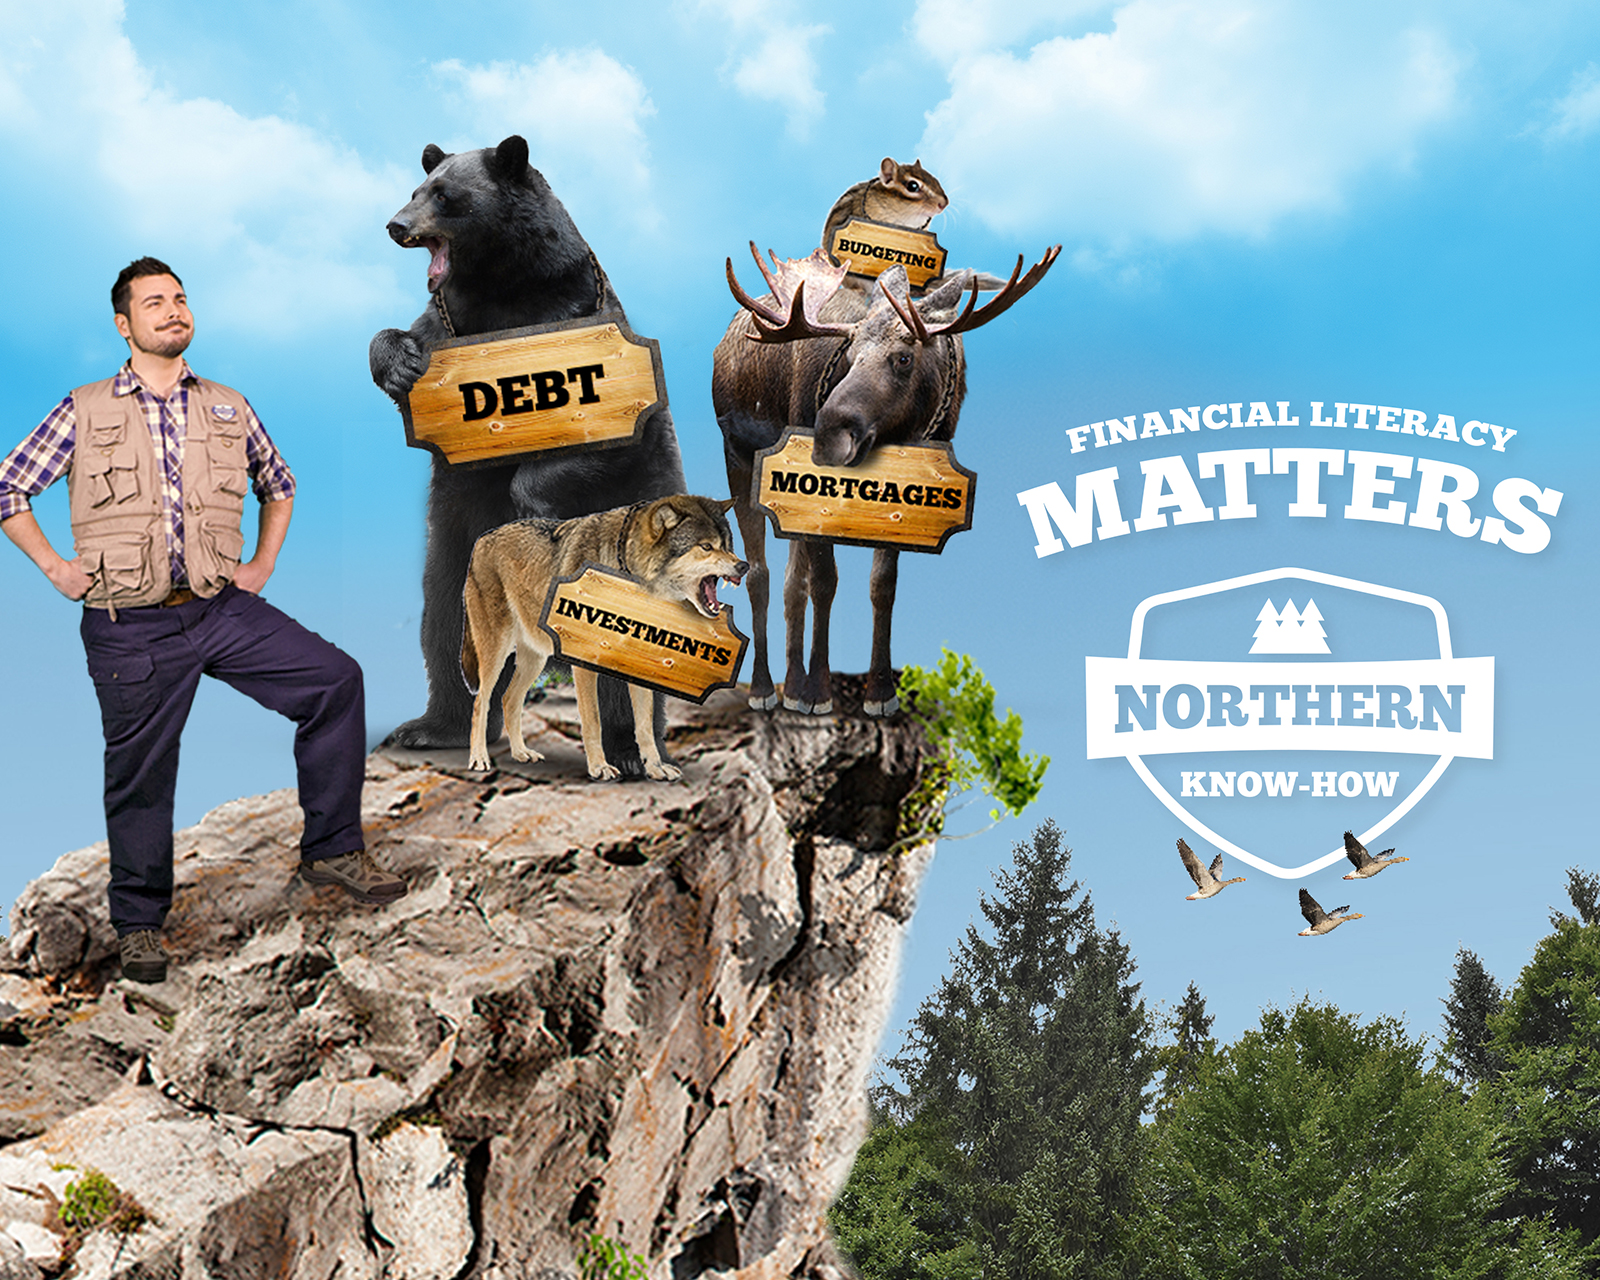 """Young man wearing an outdoors utility vest standing on a cliff with a grizzly bear holding a sign that says """"debt"""", a wolf with a sign around his neck that says """"investments"""", a moose with a sign around his neck that says """"mortgages"""" and a squirrel on top of the moose with a sign that says """"budgeting""""."""